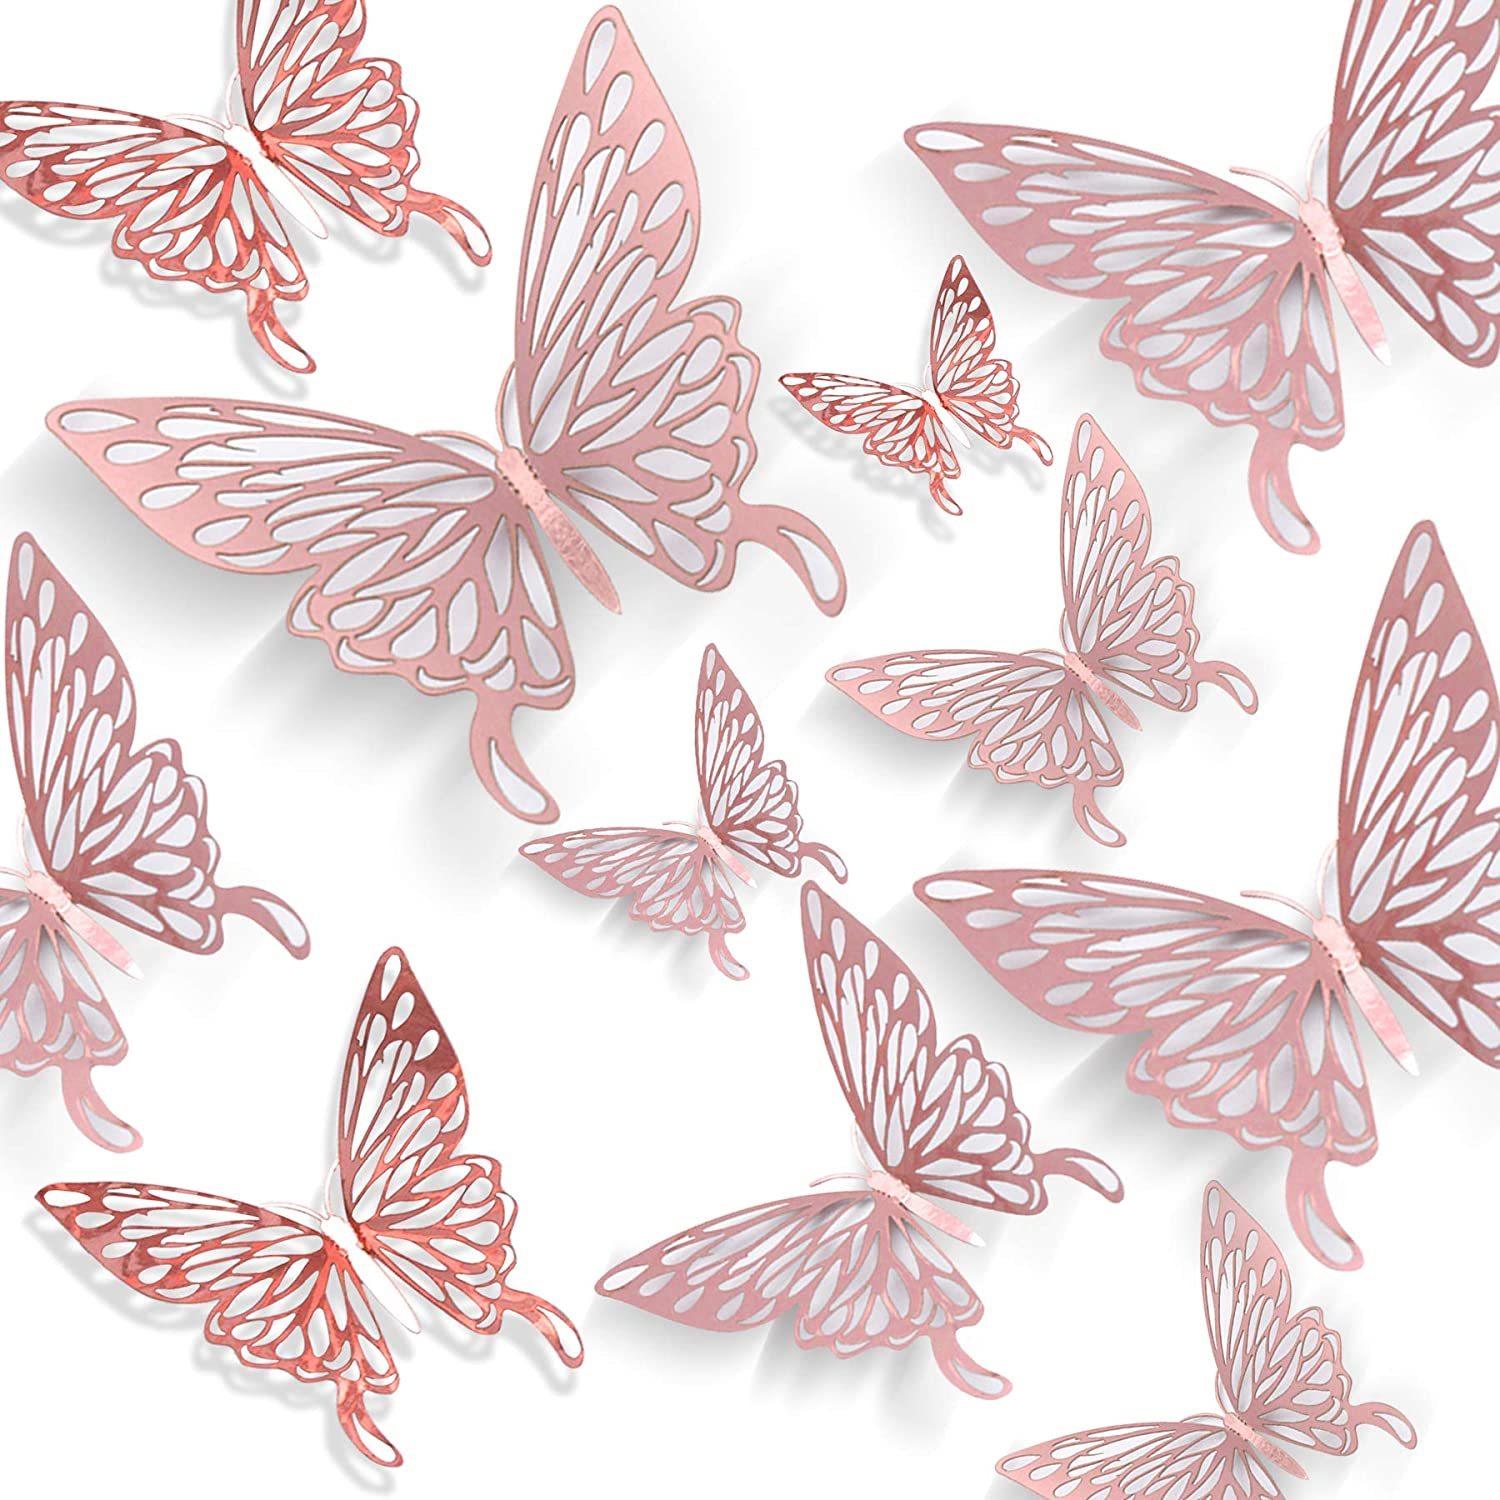 AIKS 24pcs Rose Gold Butterfly Wall Stickers 3D Butterfly Wall Decals Rose Gold Party Decorations Butterfly Wall Stickers DIY Wall Decoration for Kids Room Bedroom Party Wedding (3 Sizes)